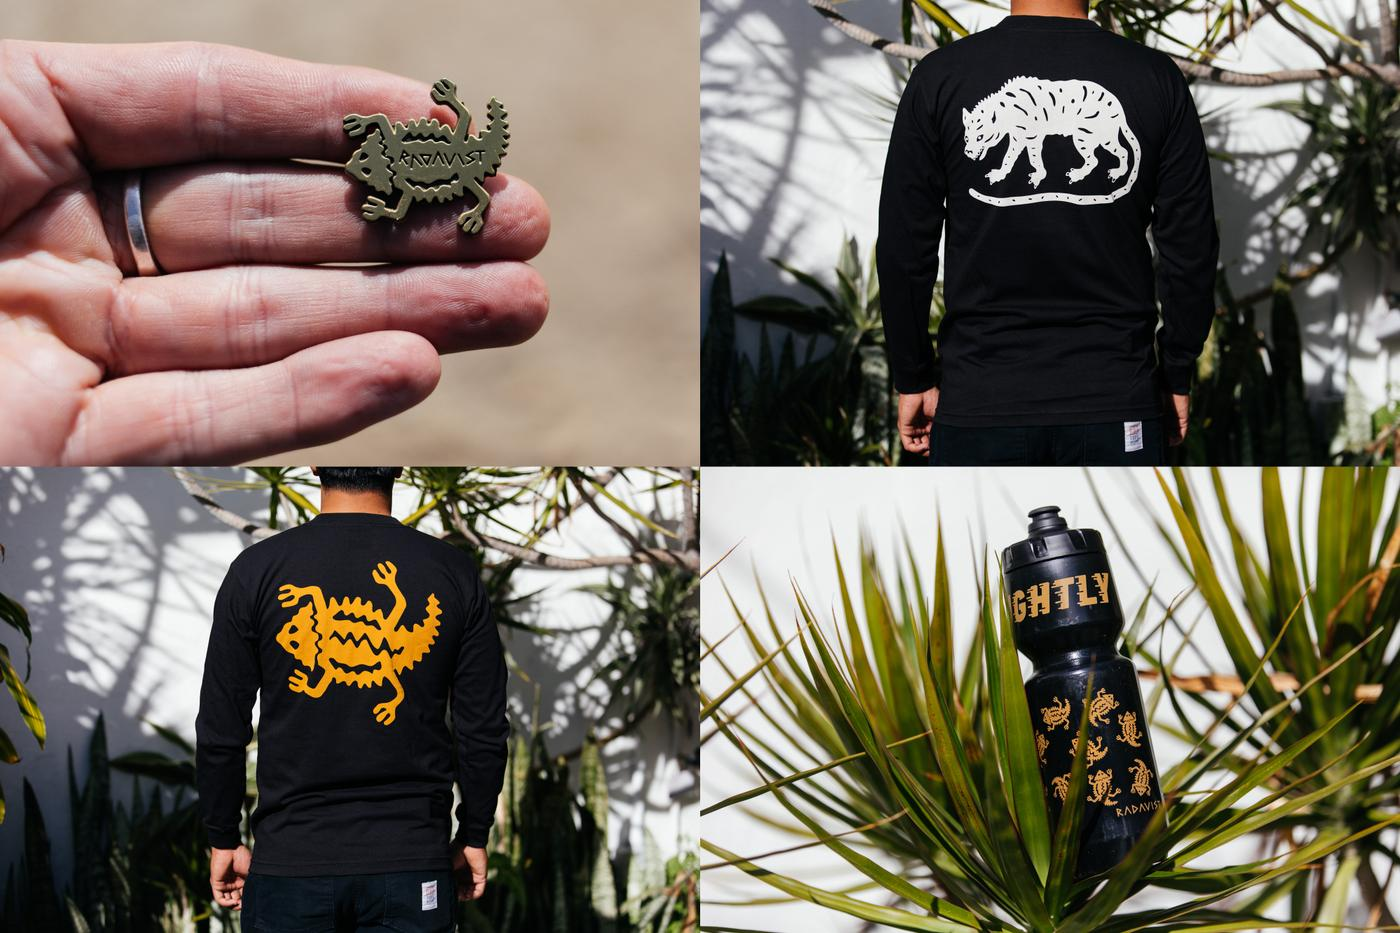 New Long Sleeve Tees, Pins, and Bottles in Stock Now